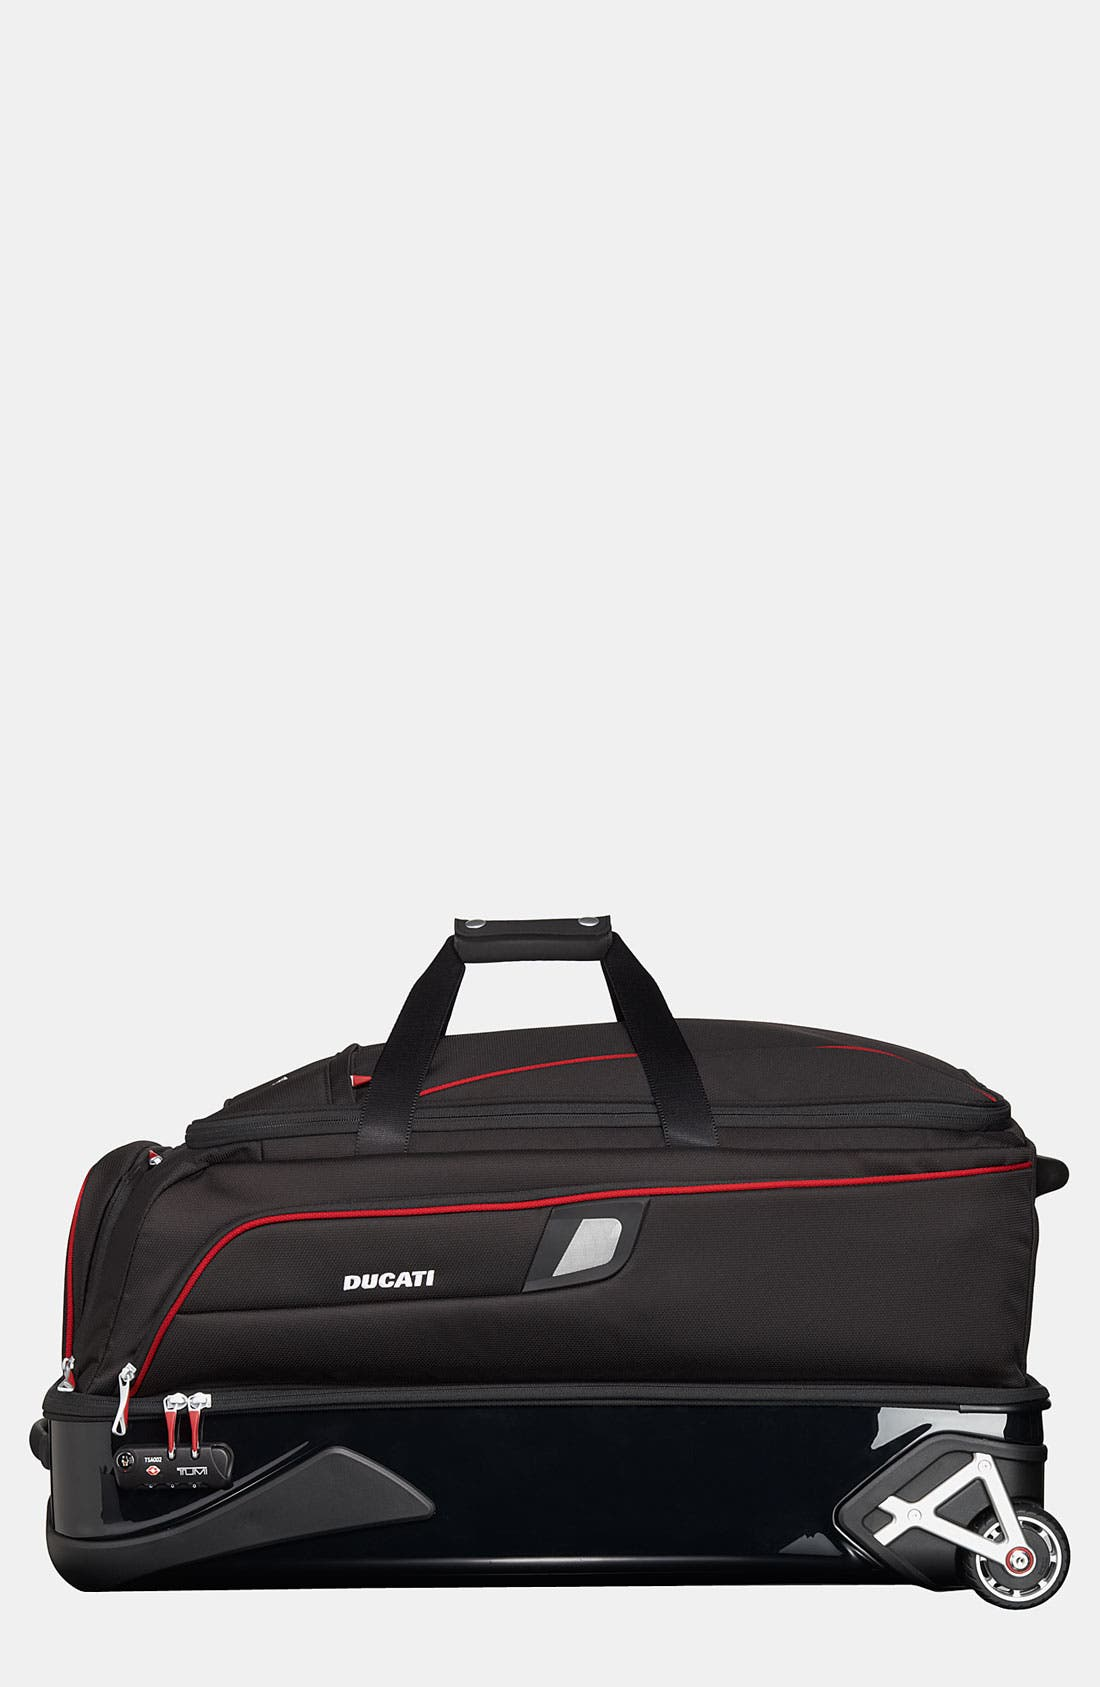 Main Image - Tumi 'Ducati - Due Porte' Collapsible Wheeled Duffel Bag